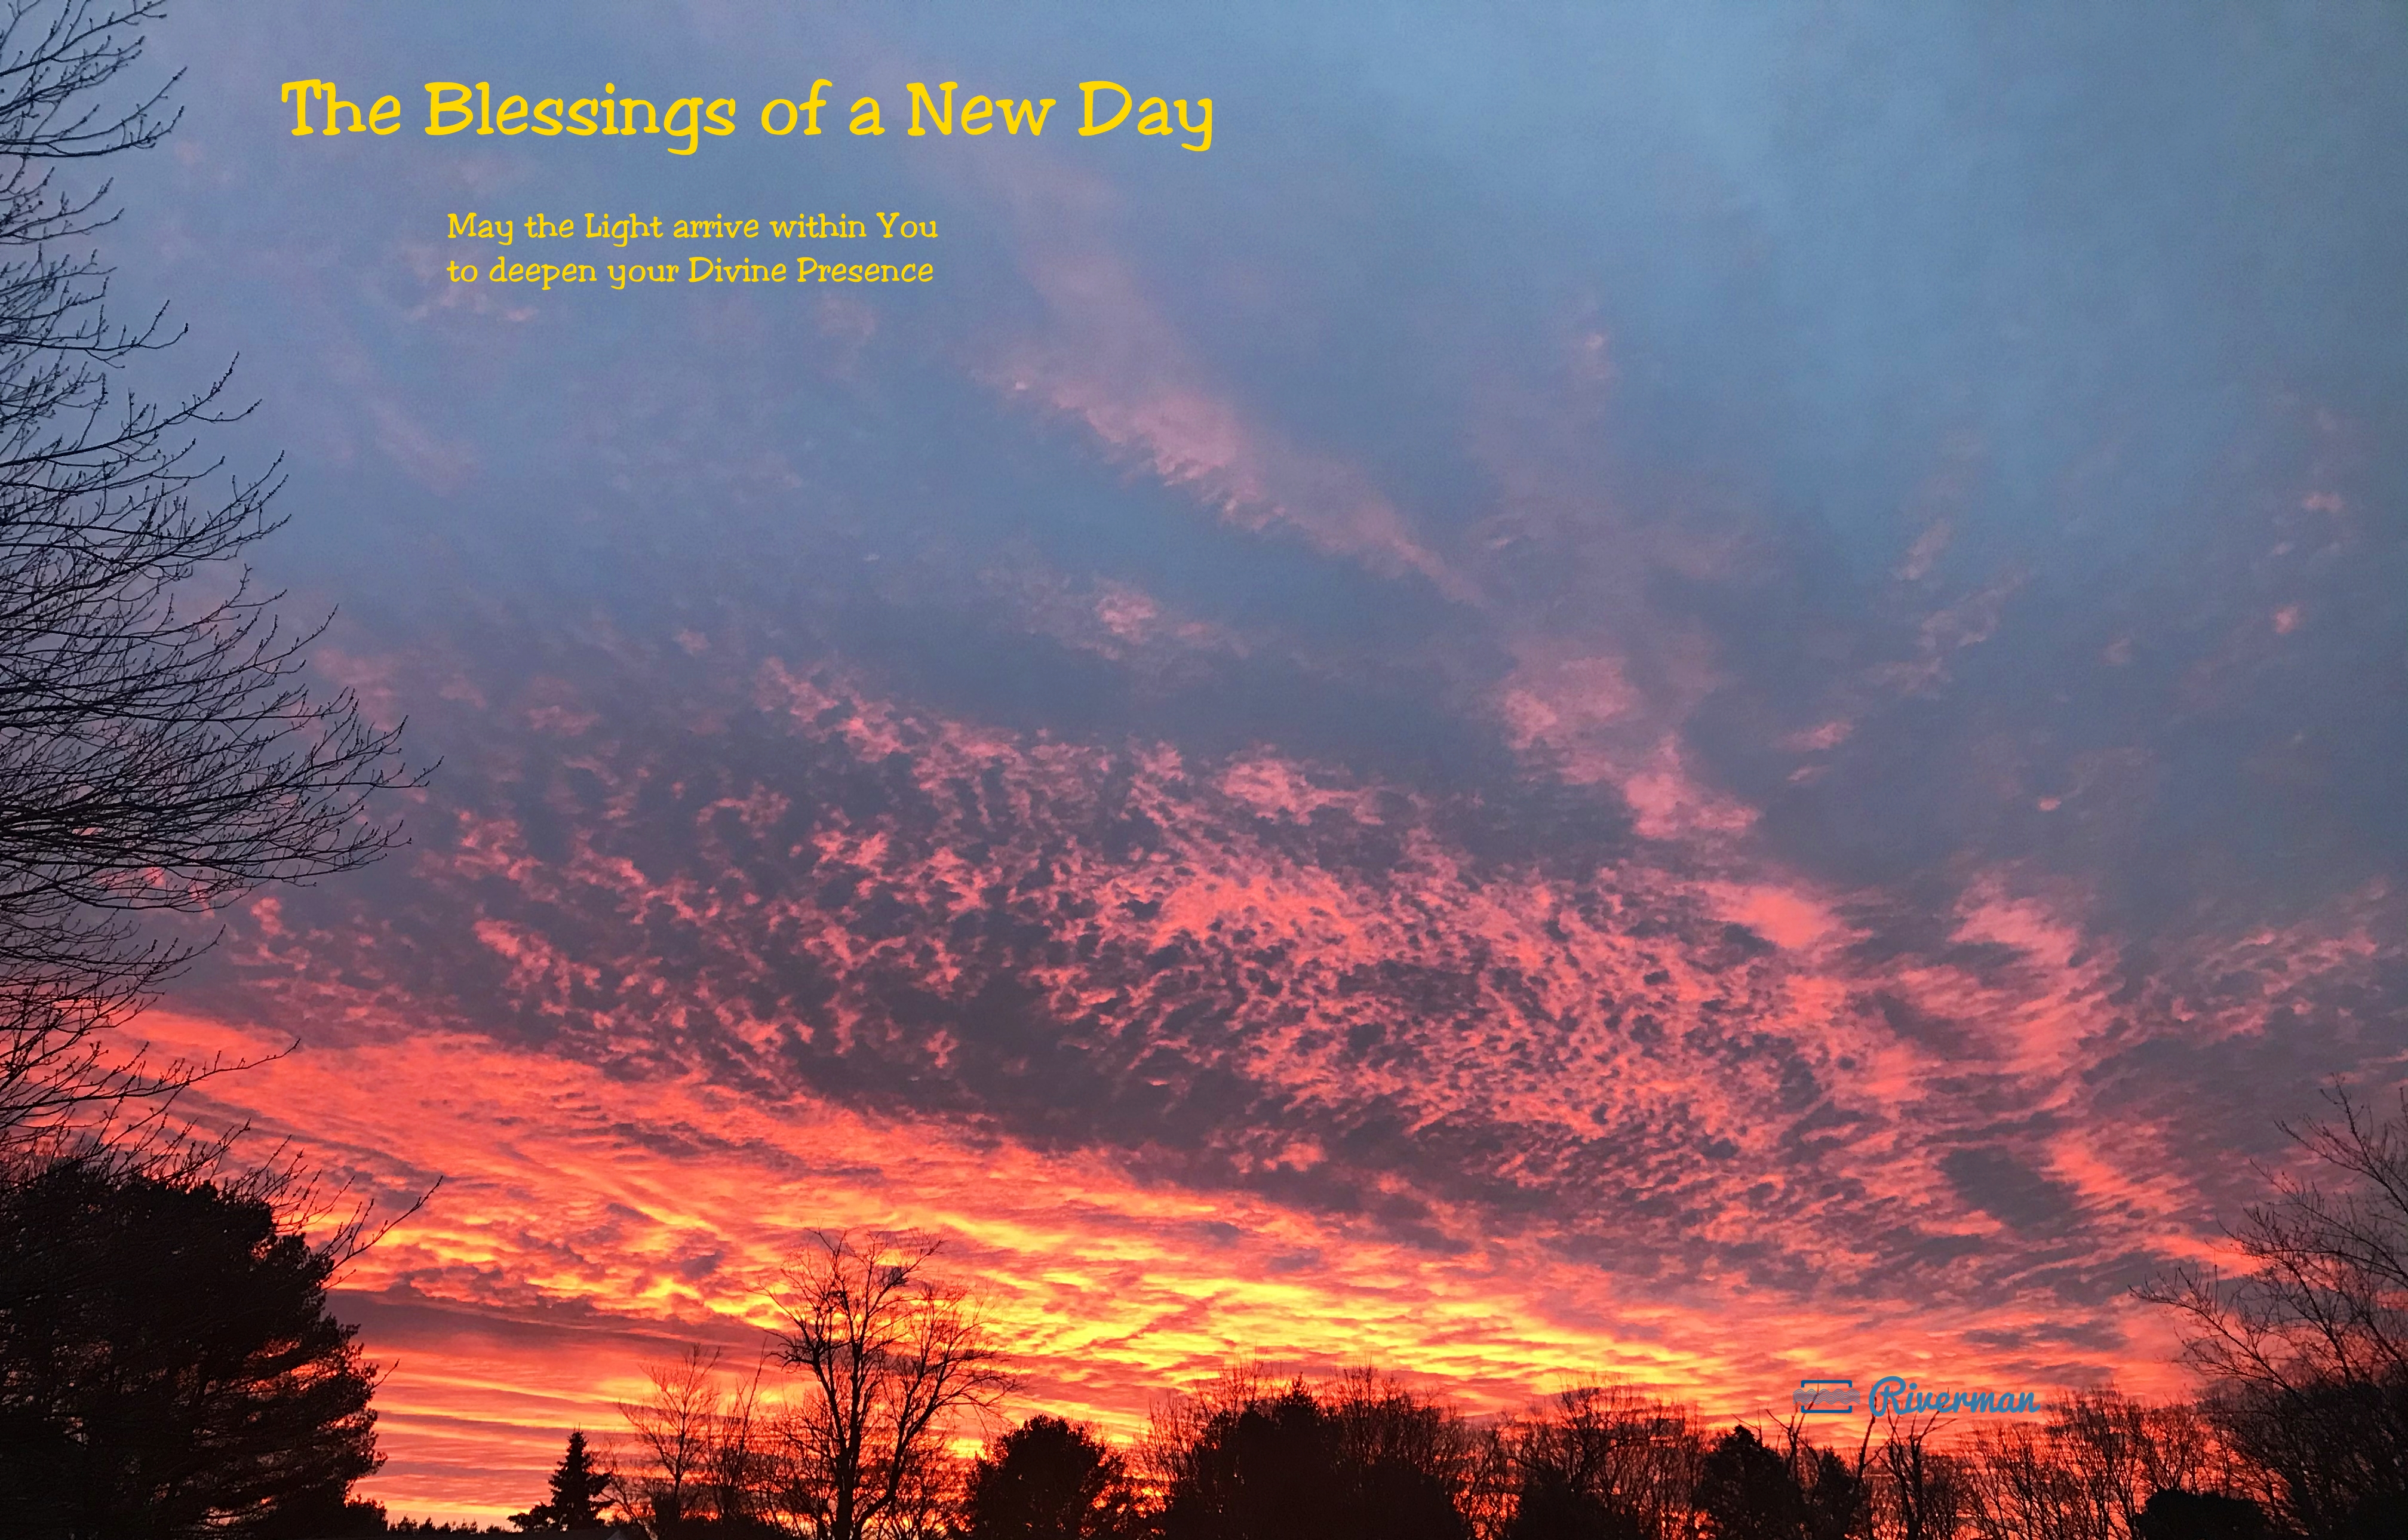 New Day Blessings